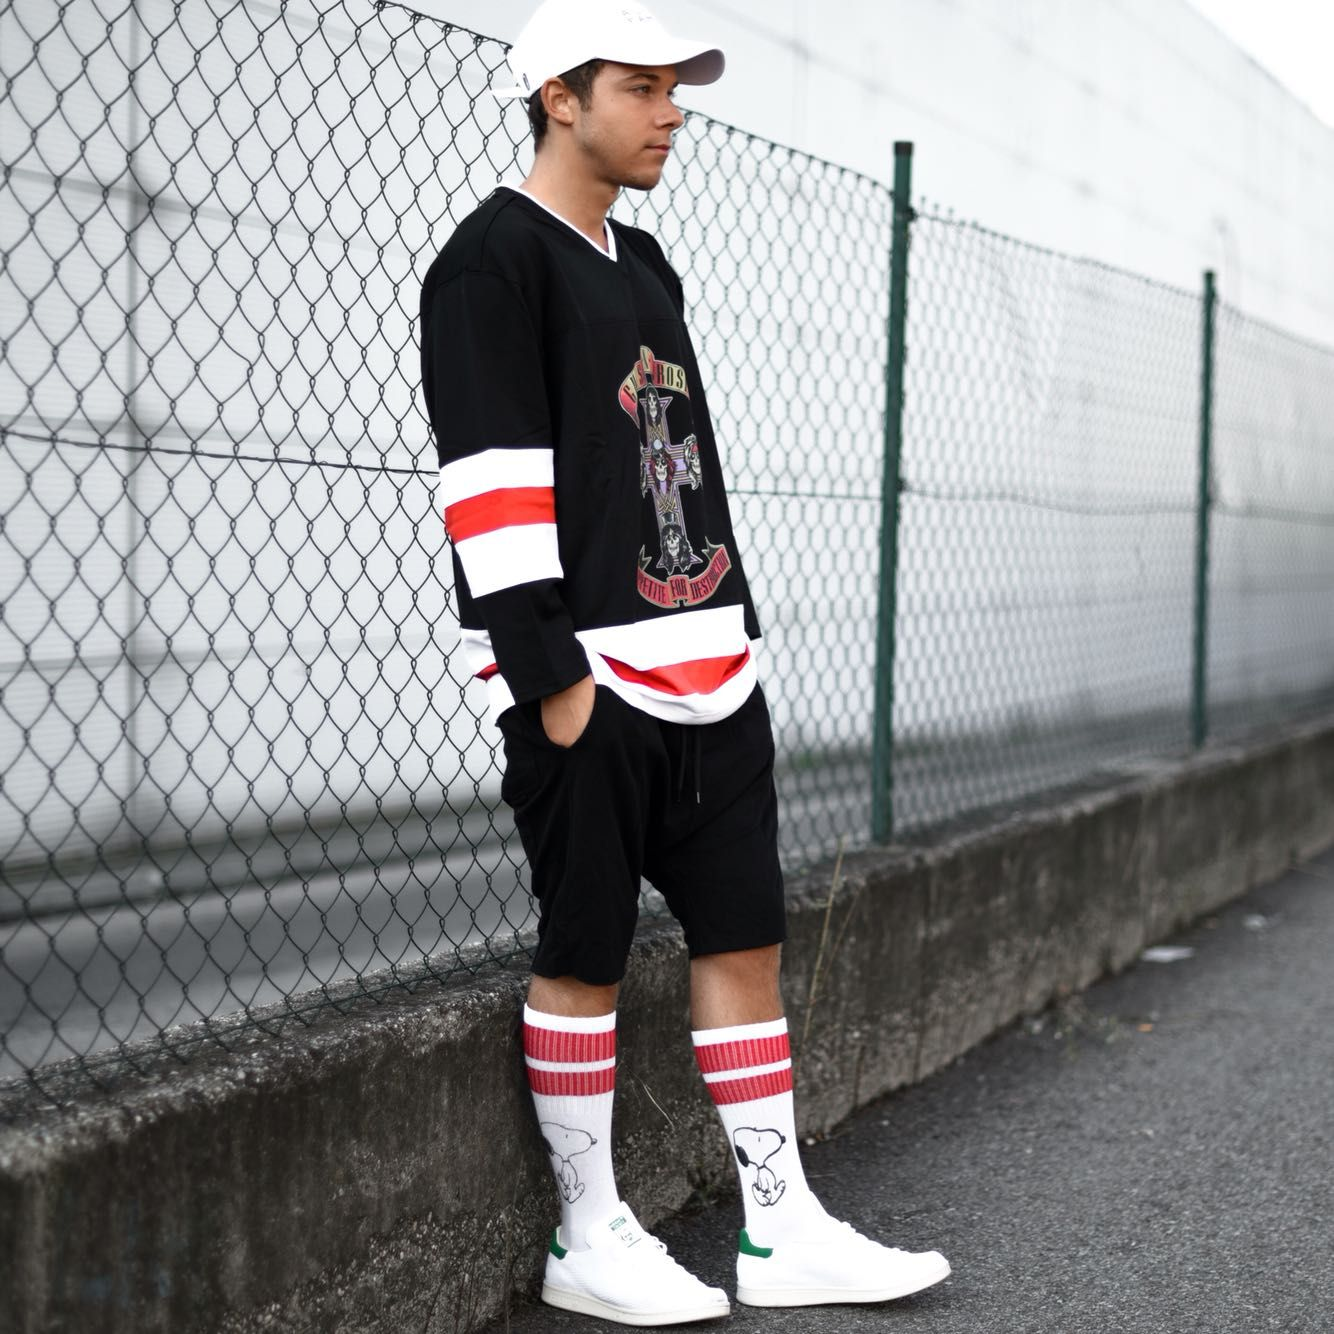 Sports Event If I Were To Go Watch A Hockey Game I D Wear Something Like This The Jersey Shows That I W Mens Outfits Casual Wear For Men Mens Street Style